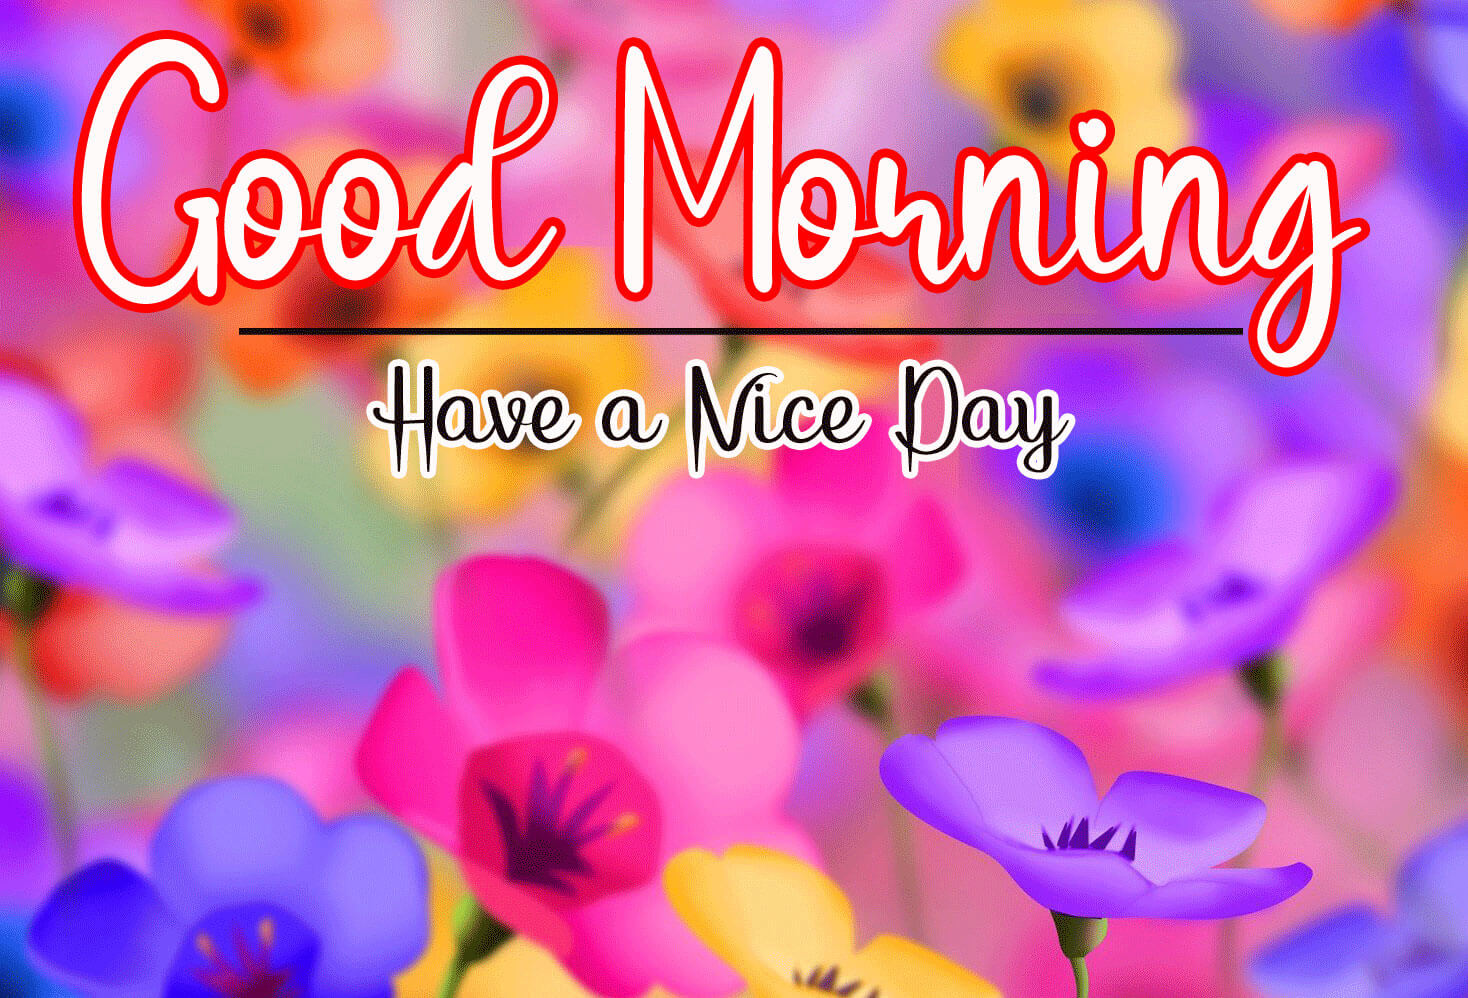 Best Good Morning Images Wallpaper HD for Whatsapp